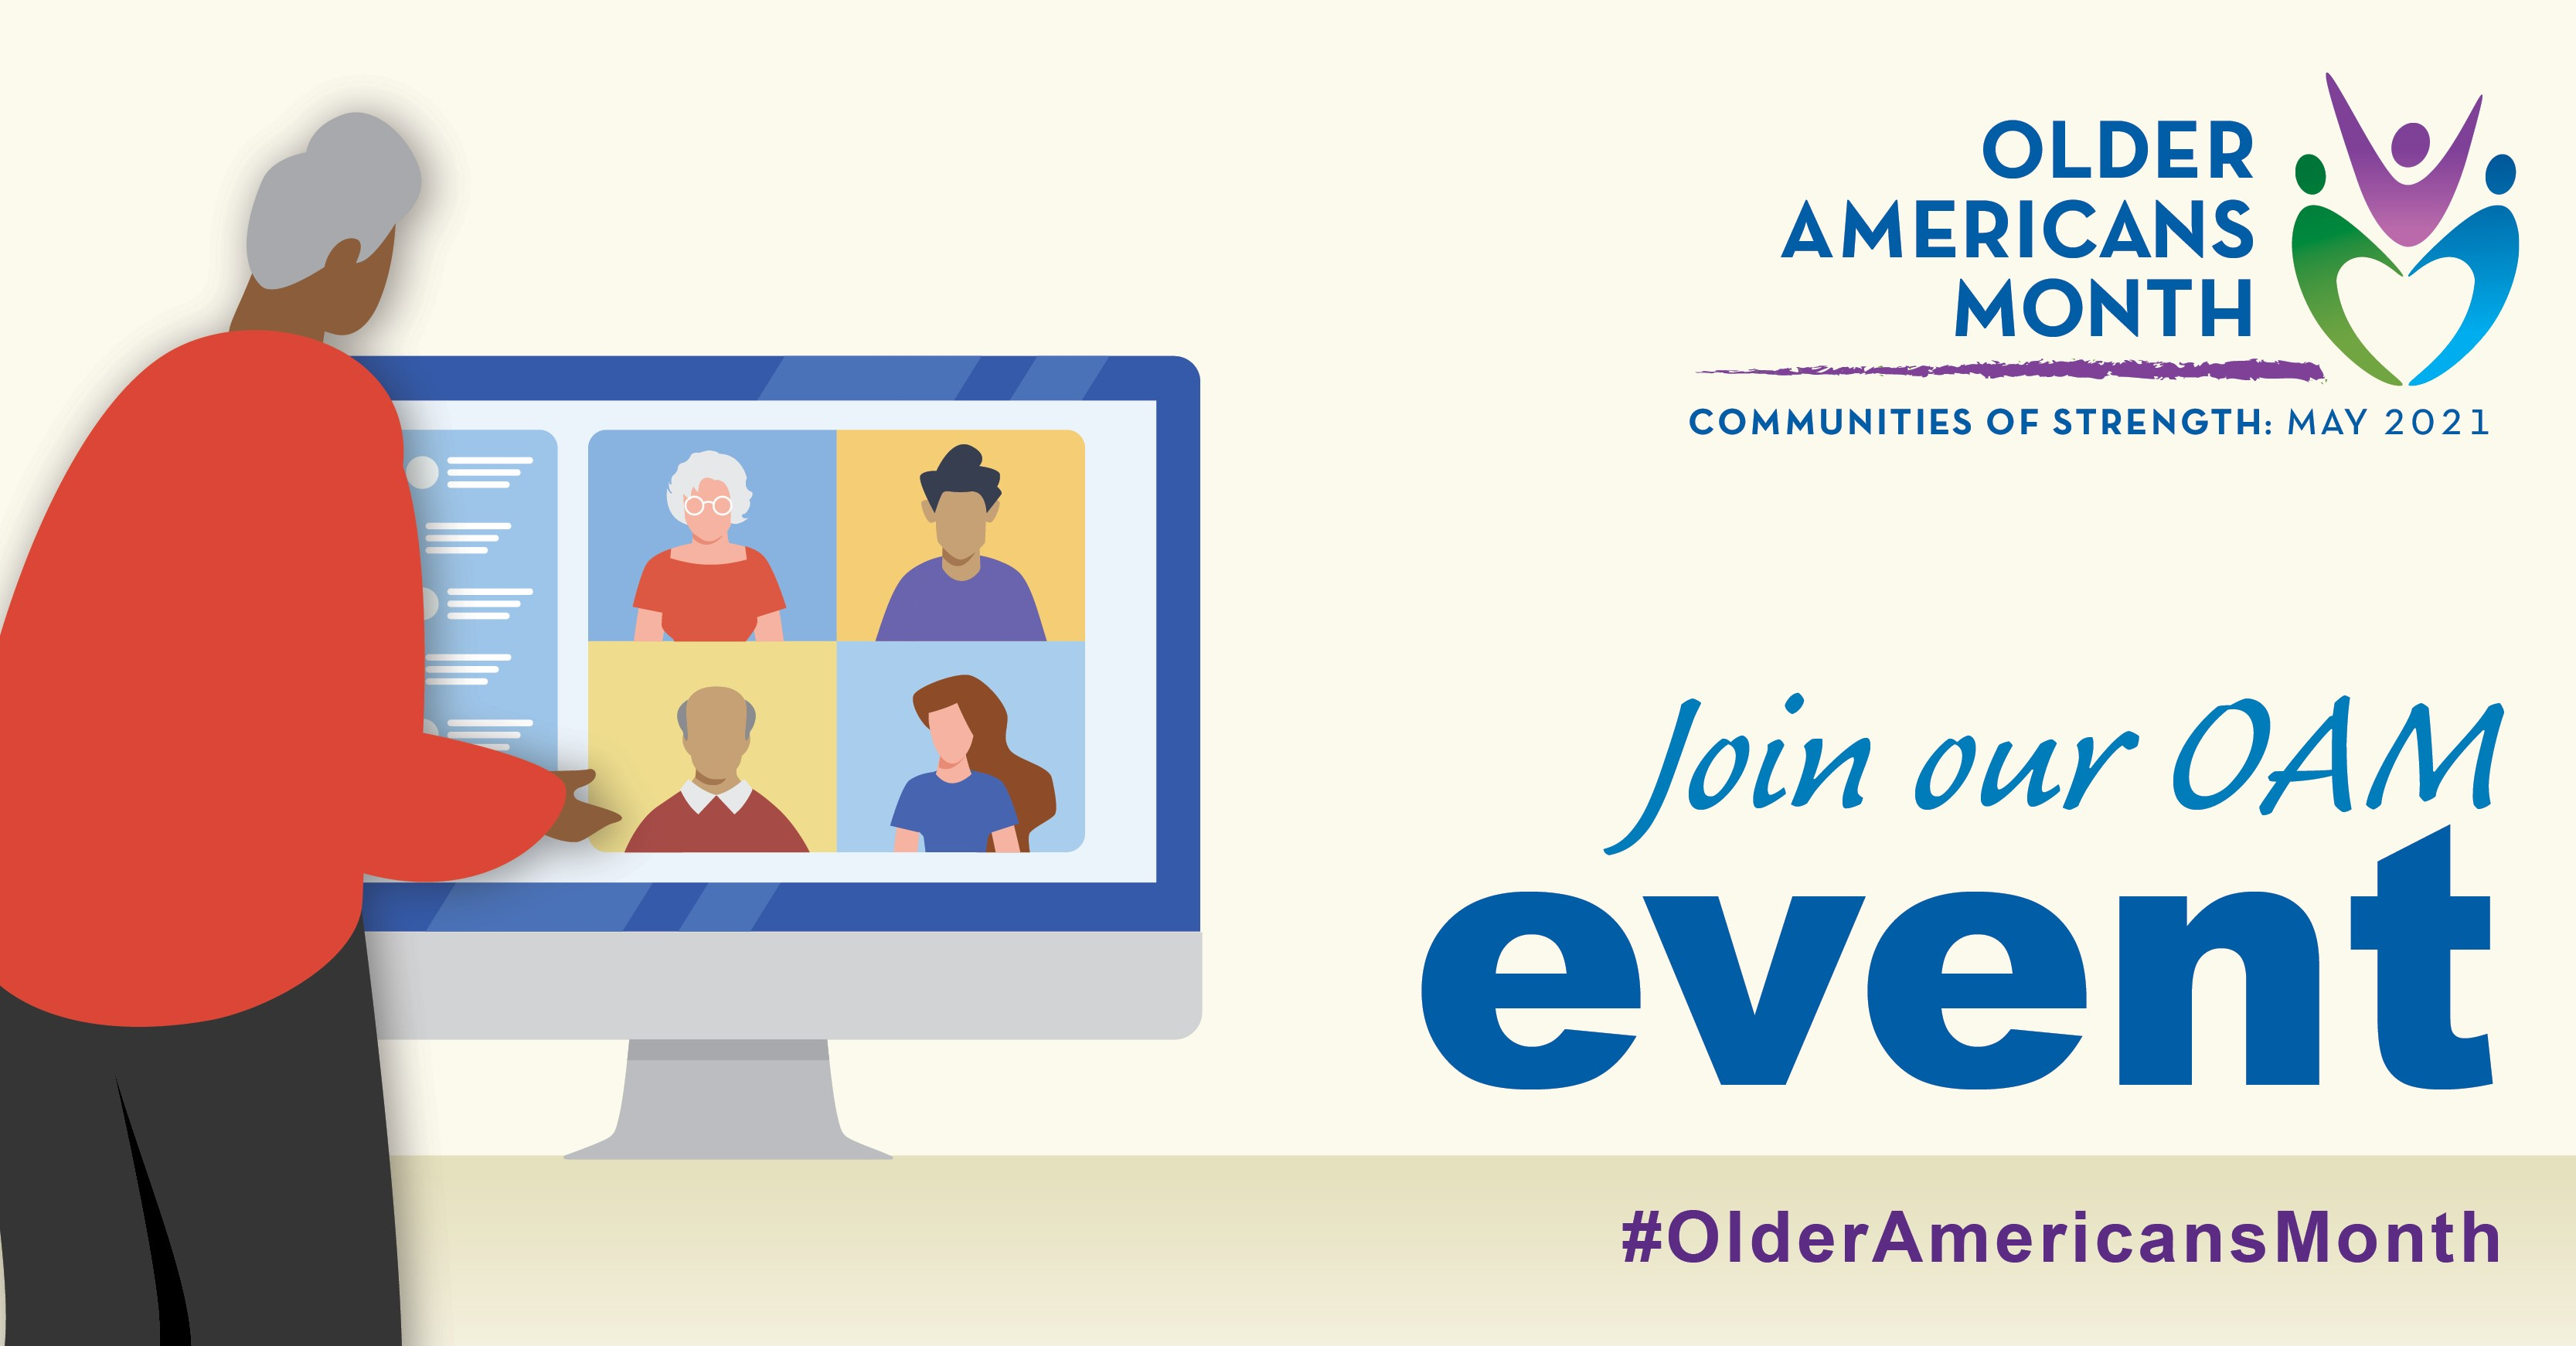 Social Media Graphic: Communities of Strength, Older Americans Month, May 2021. Join our OAM event. #OlderAmericansMonth